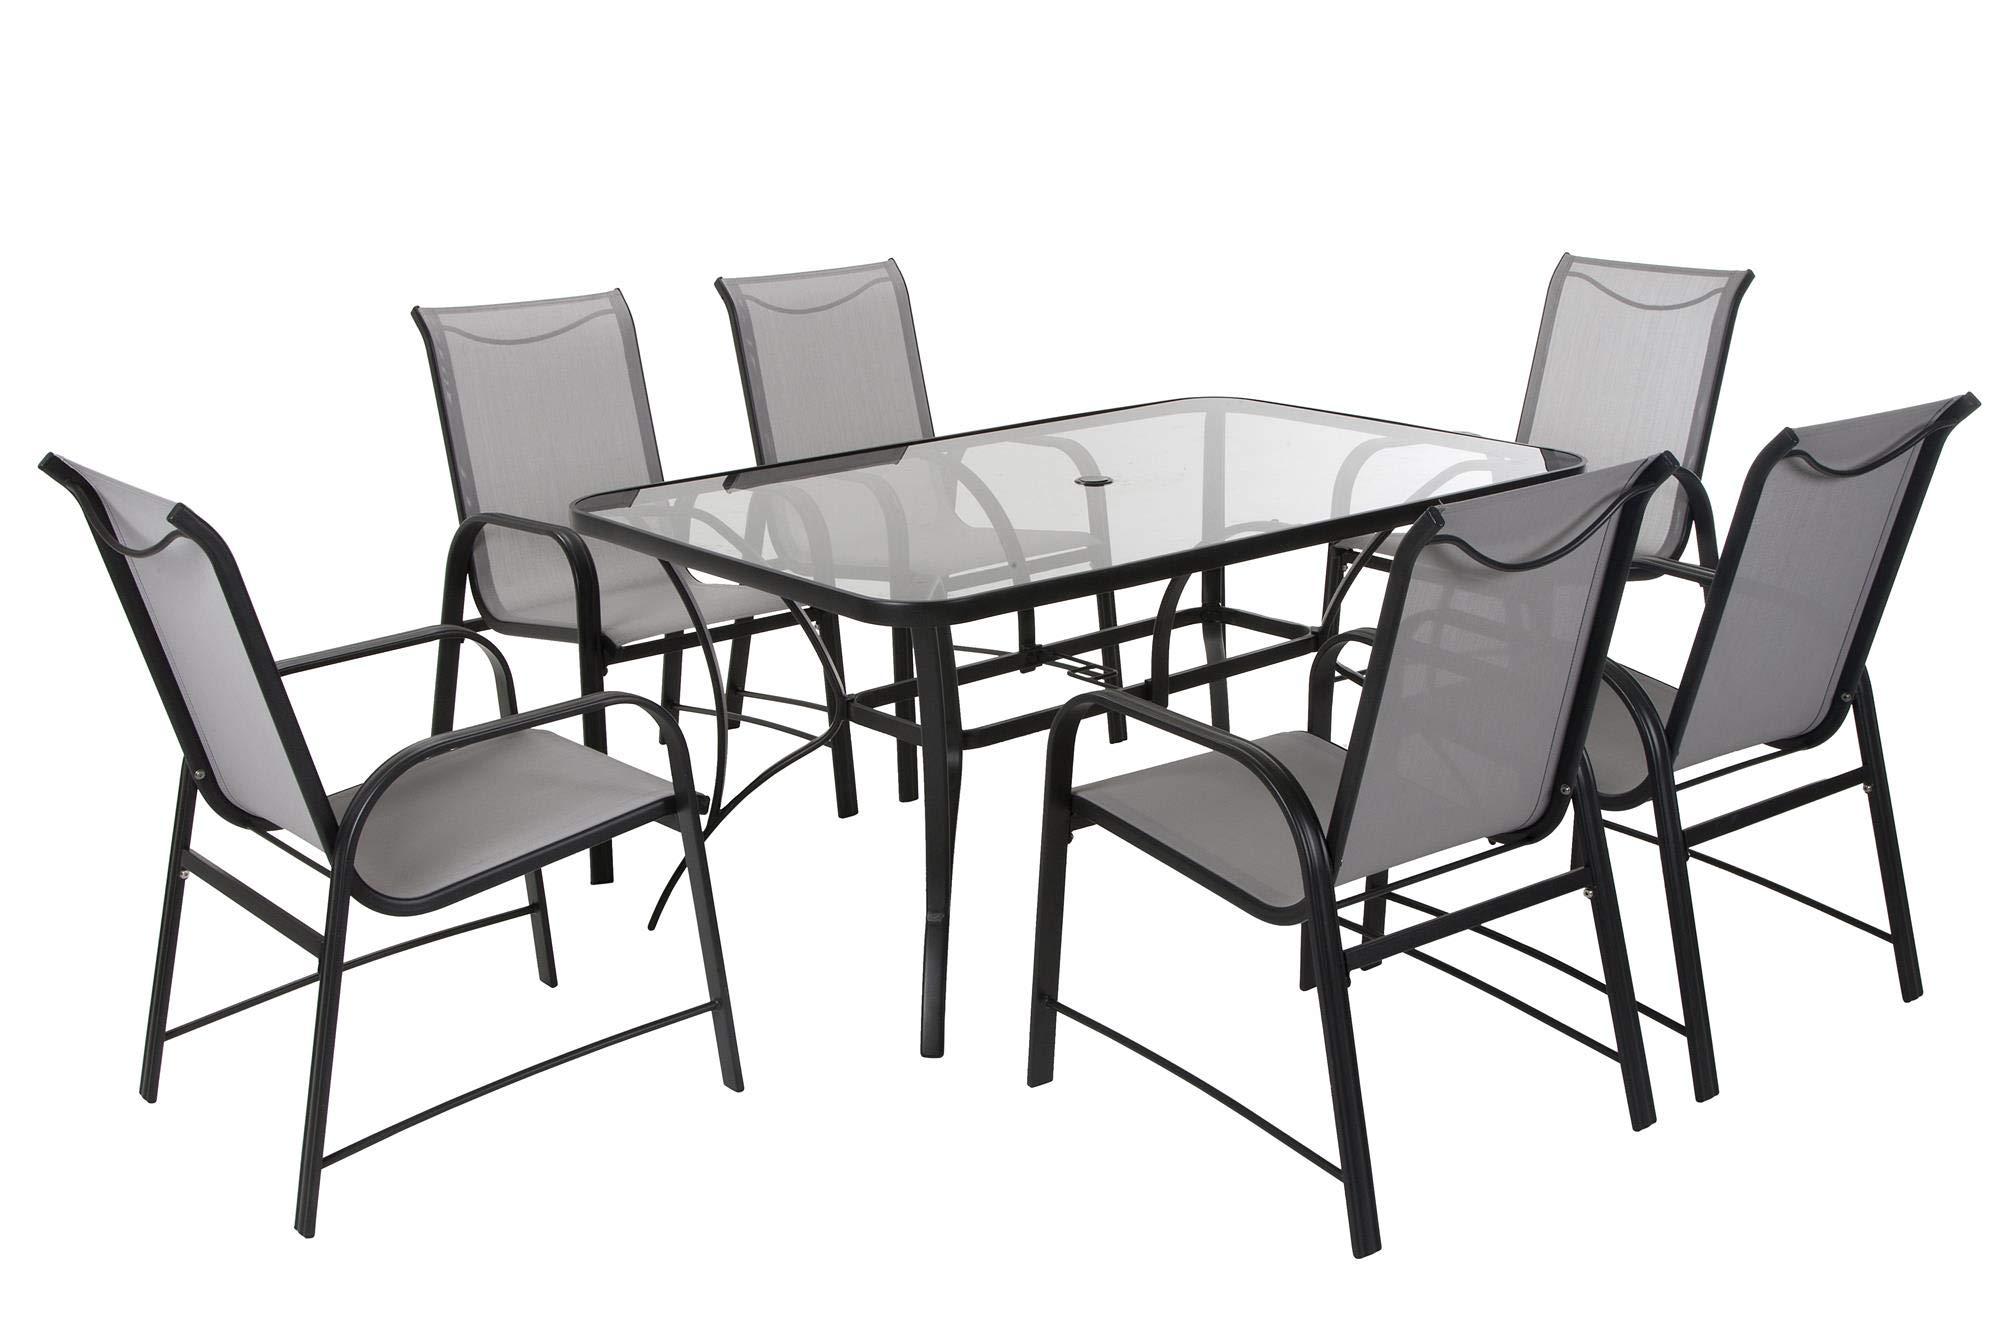 COSCO 88647GLGE Outdoor Living 7 Piece Paloma Steel Patio Dining Set, Light/Dark Gray by Cosco Outdoor Living (Image #5)